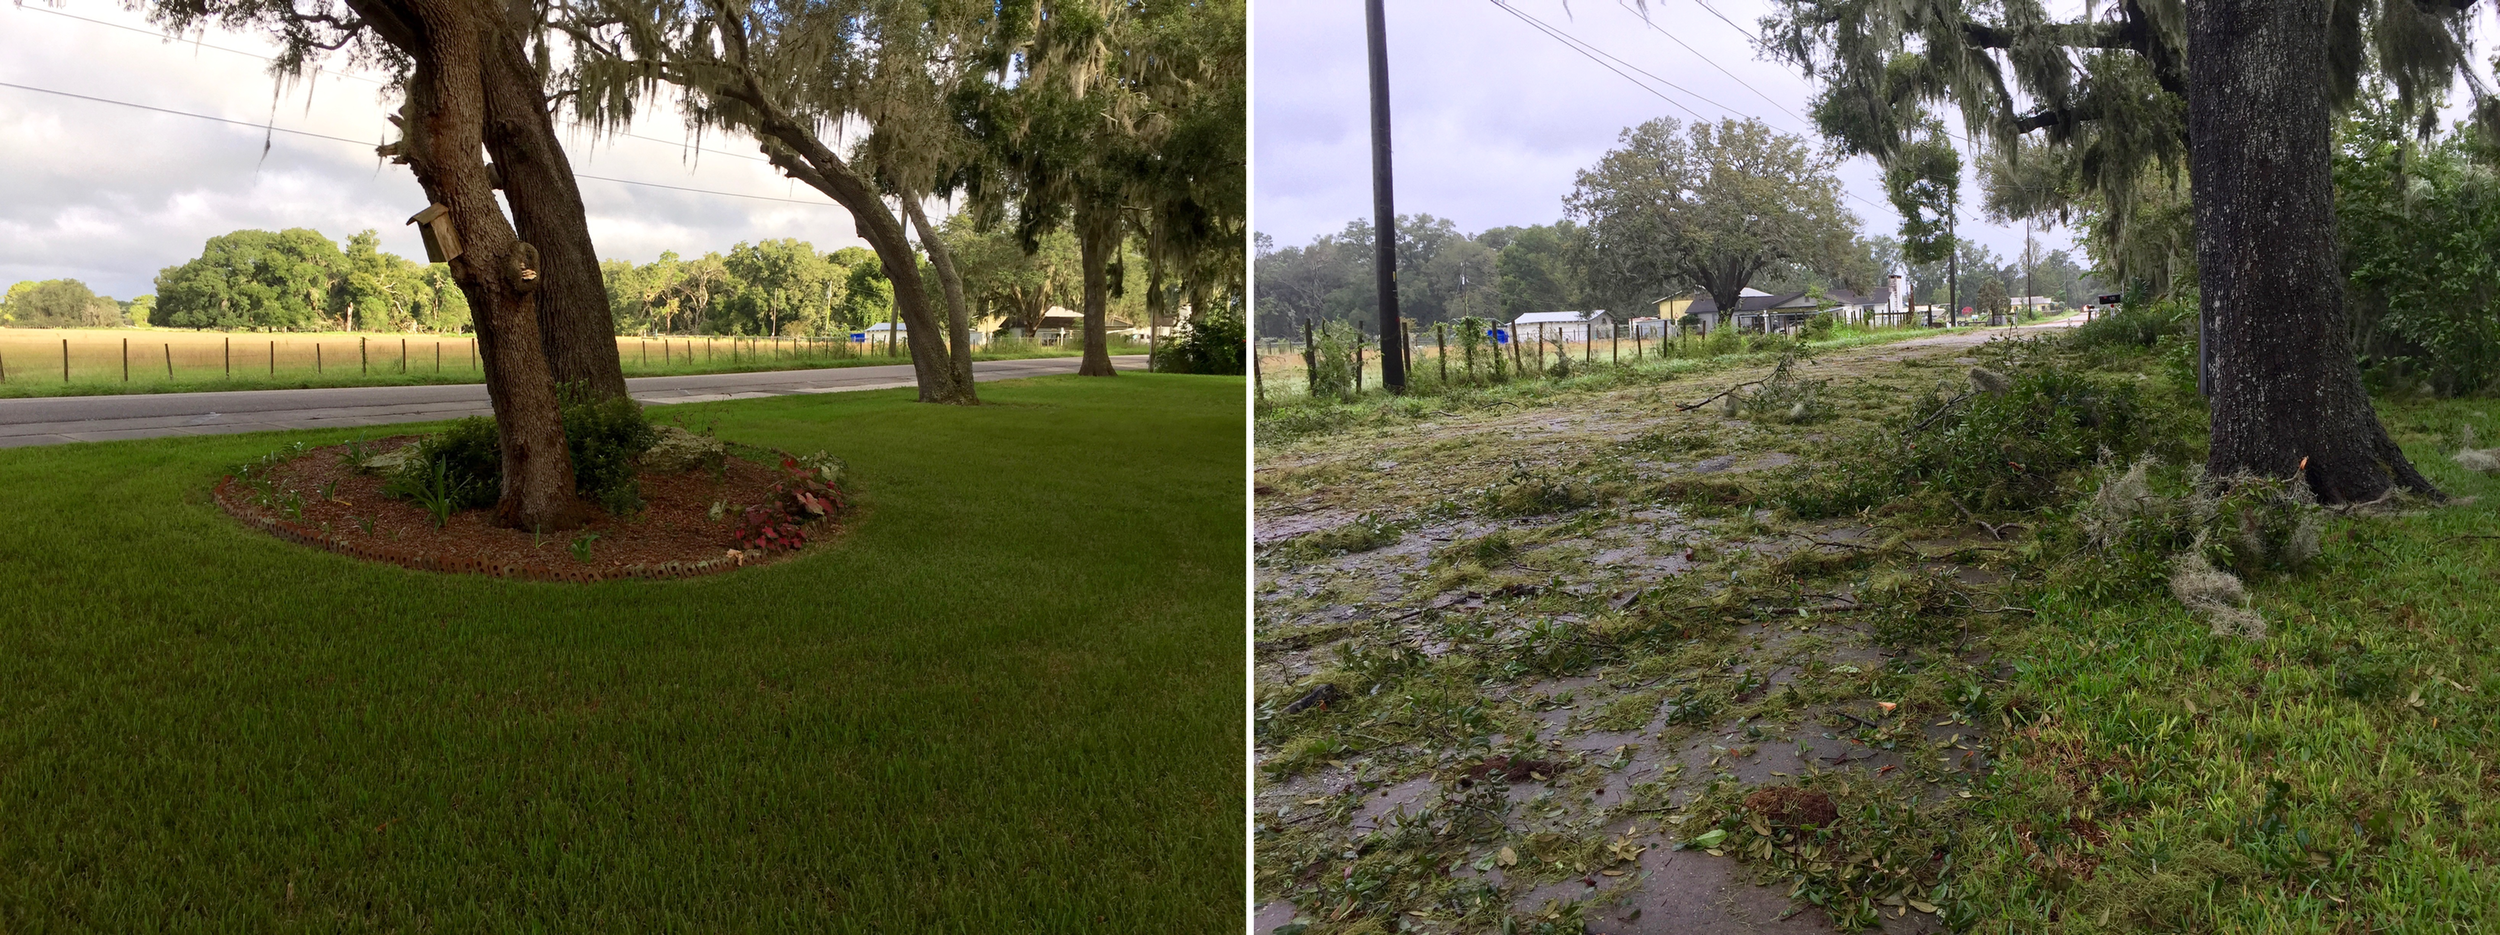 The western side of the Marston backyard, Saturday morning before Hurricane Irma and the Monday morning after. (Glenn Marston)